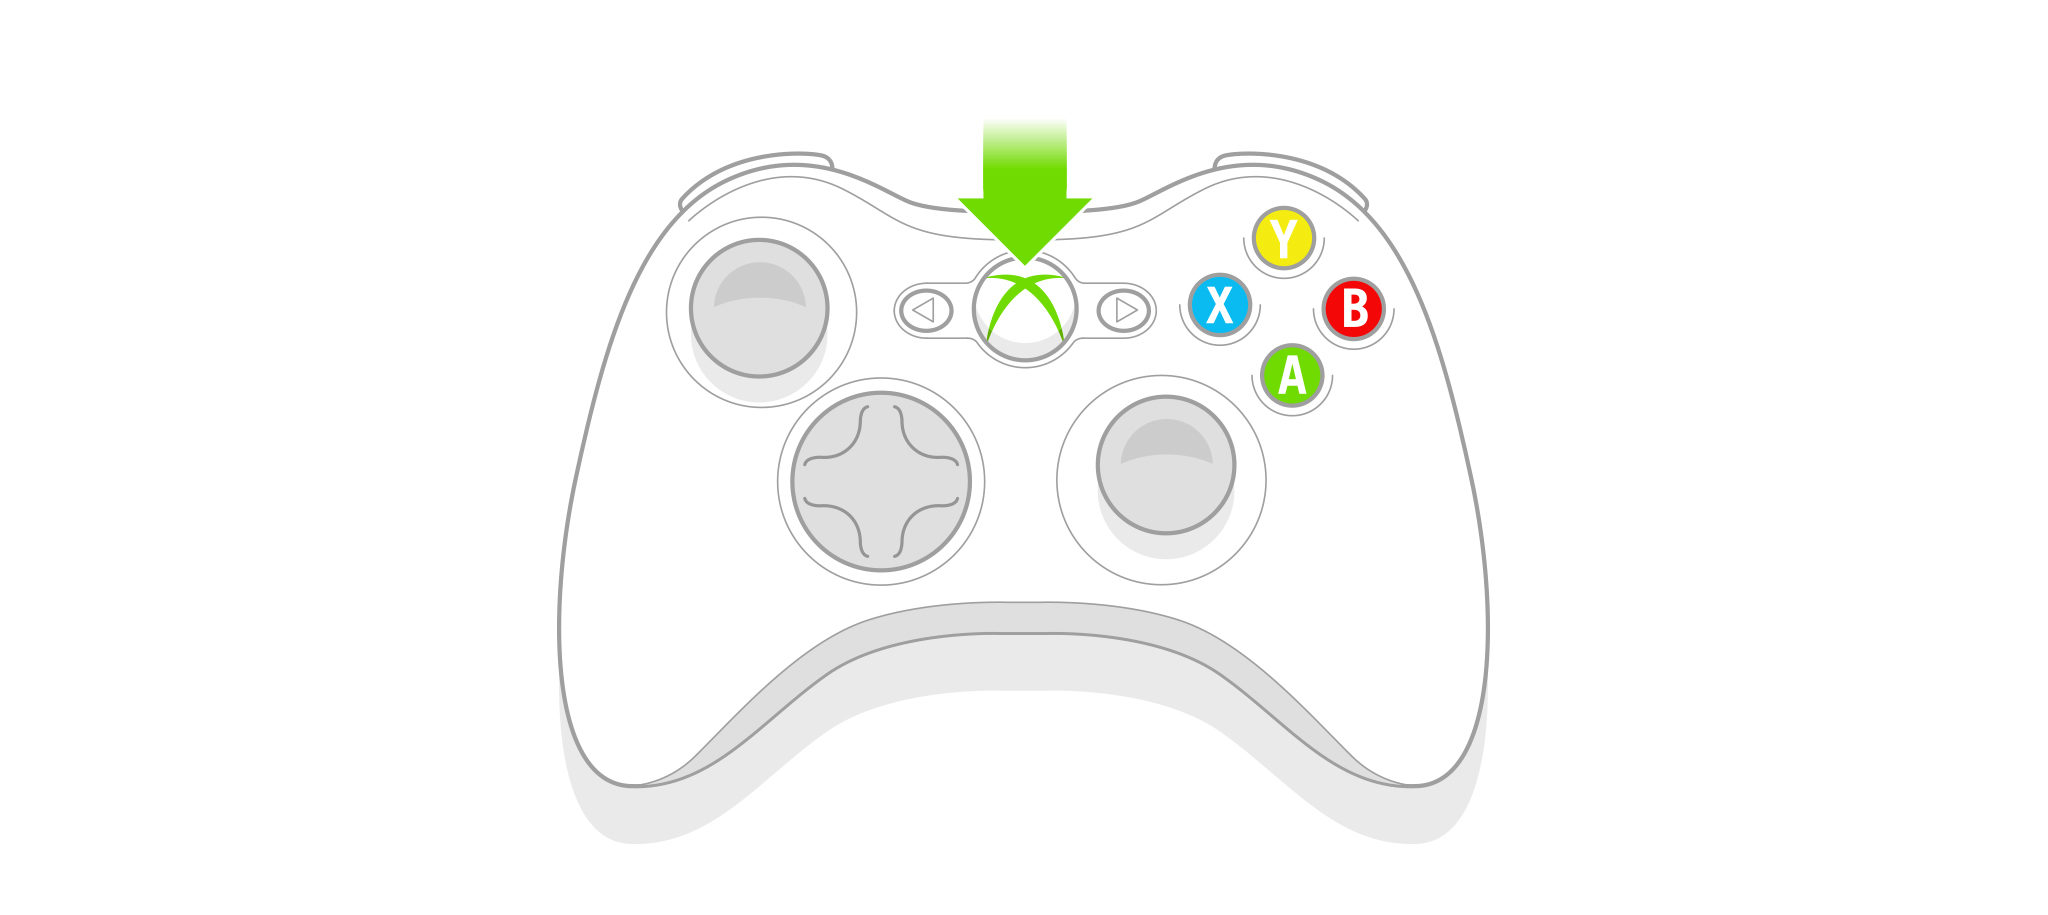 xBox Illustrations